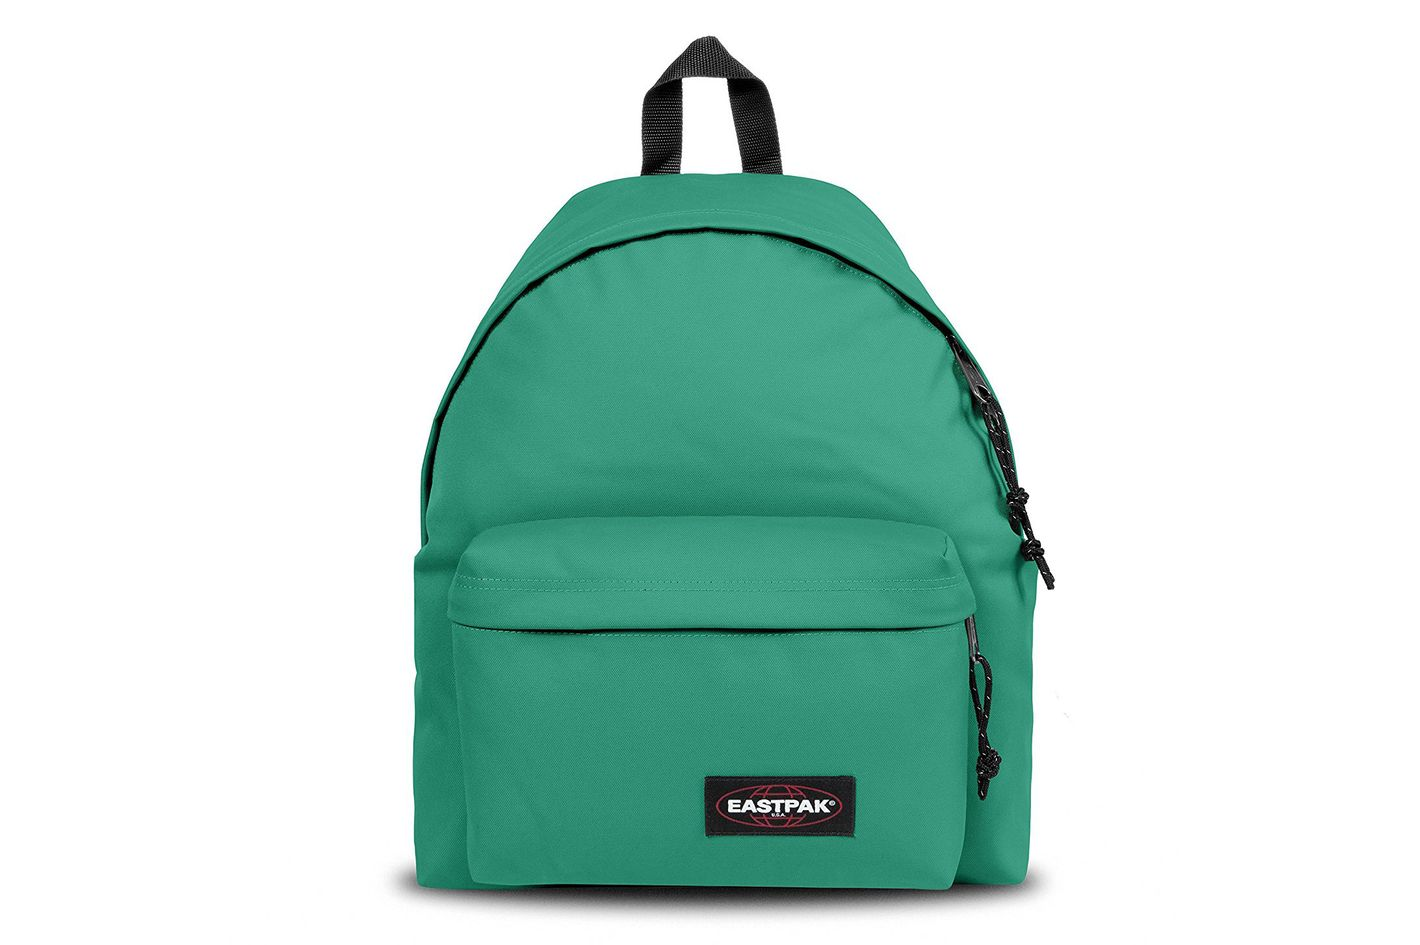 Eastpak Padded Pak'r, Tagged Green